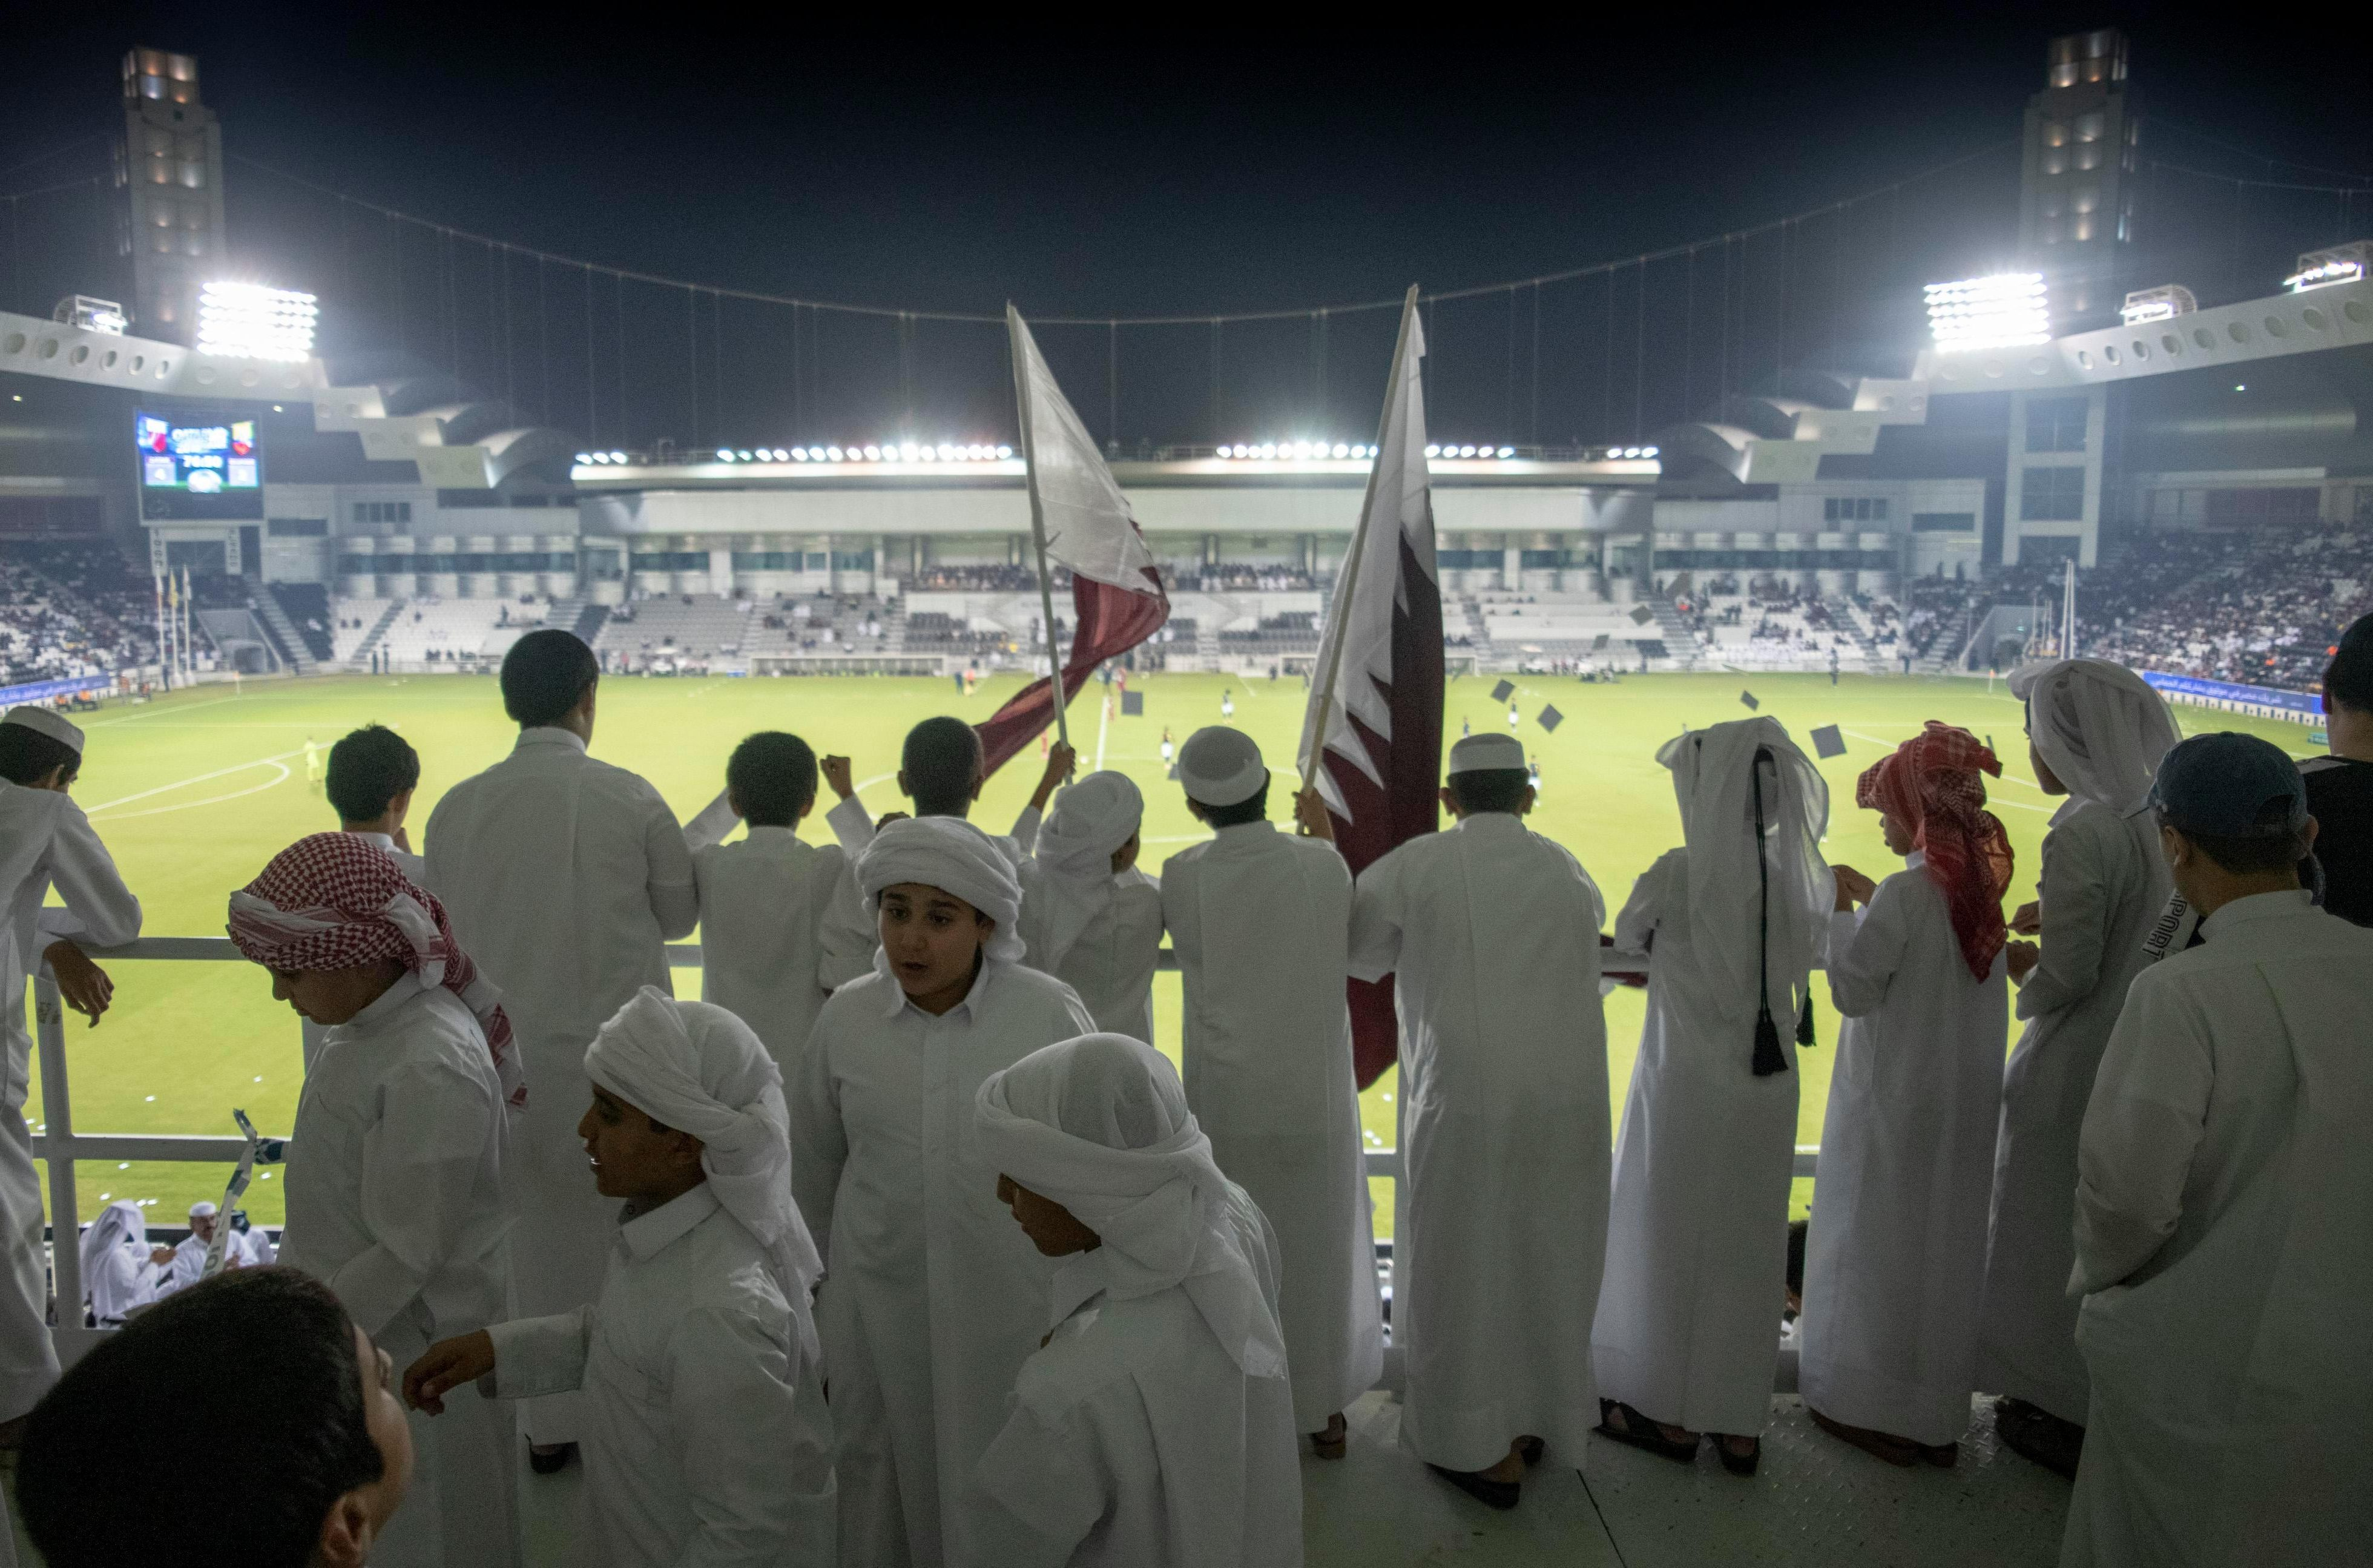 Qatar fans get a taste of what the World Cup will be like in the Middle East